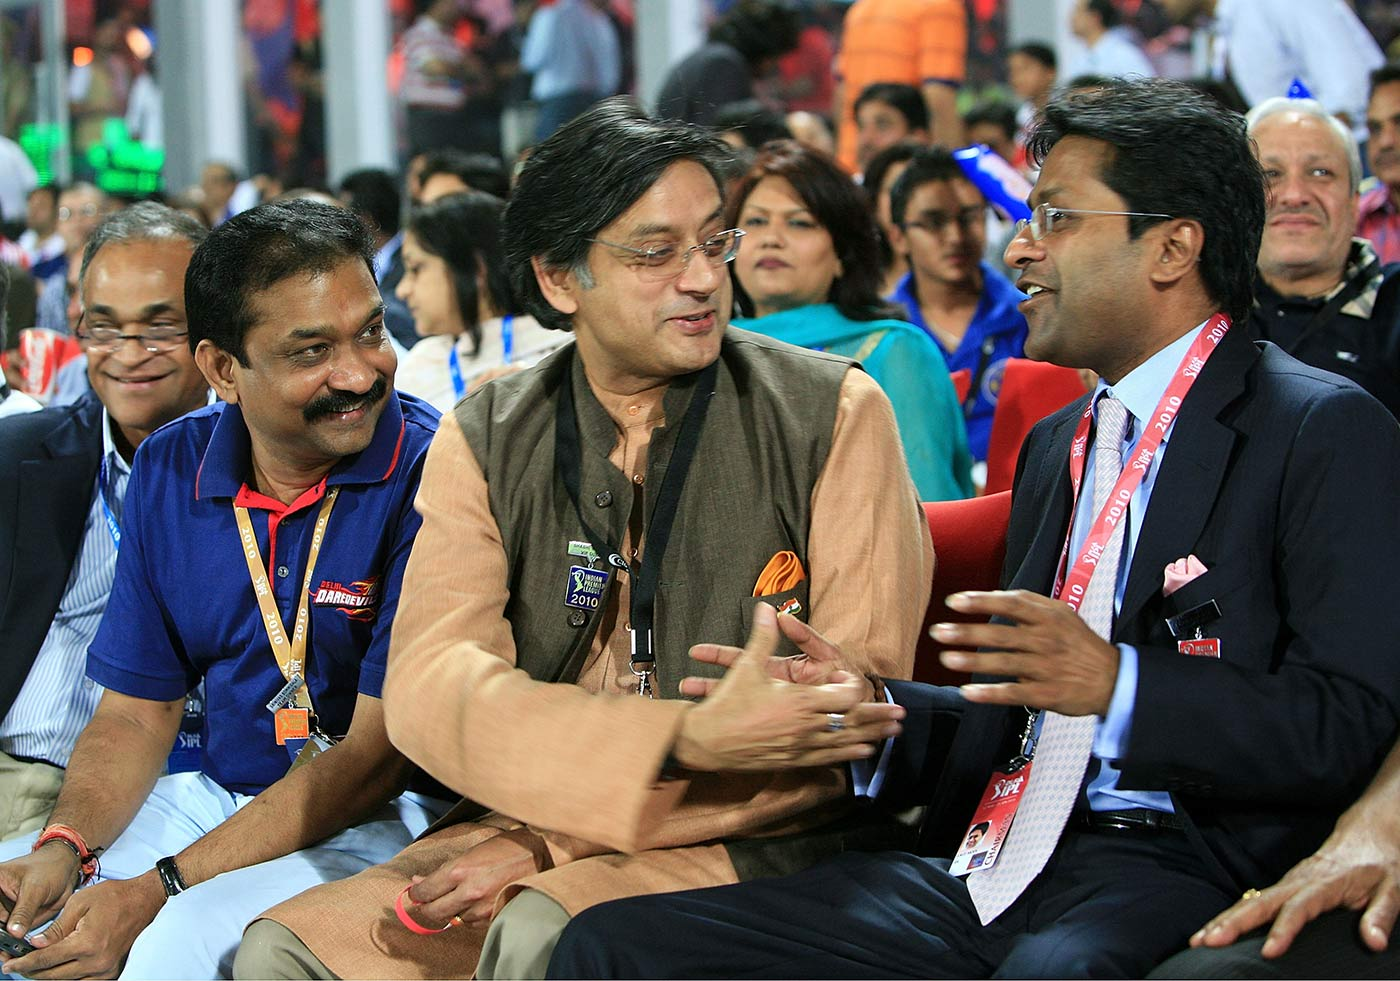 Shashi Tharoor and Lalit Modi in 2010, before the league was wracked by scandal